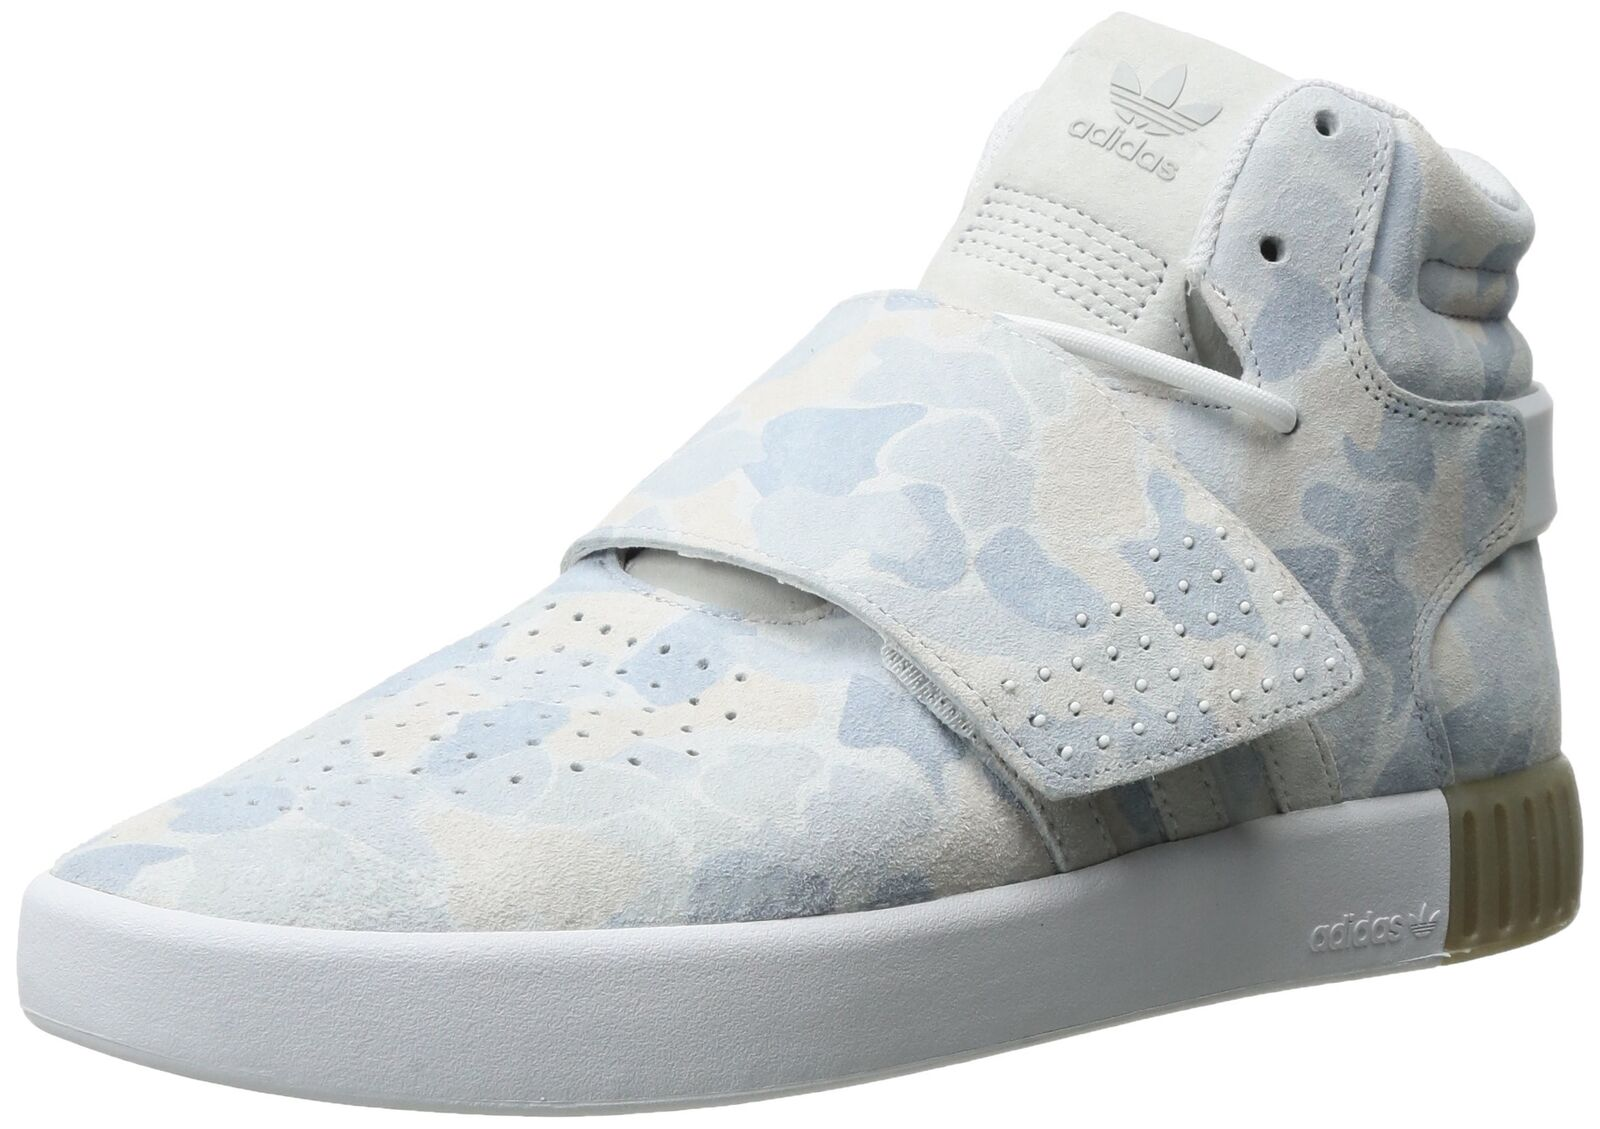 adidas Originals Men's Tubular Invader Strap Shoes White/White/Lgh Solid ... New